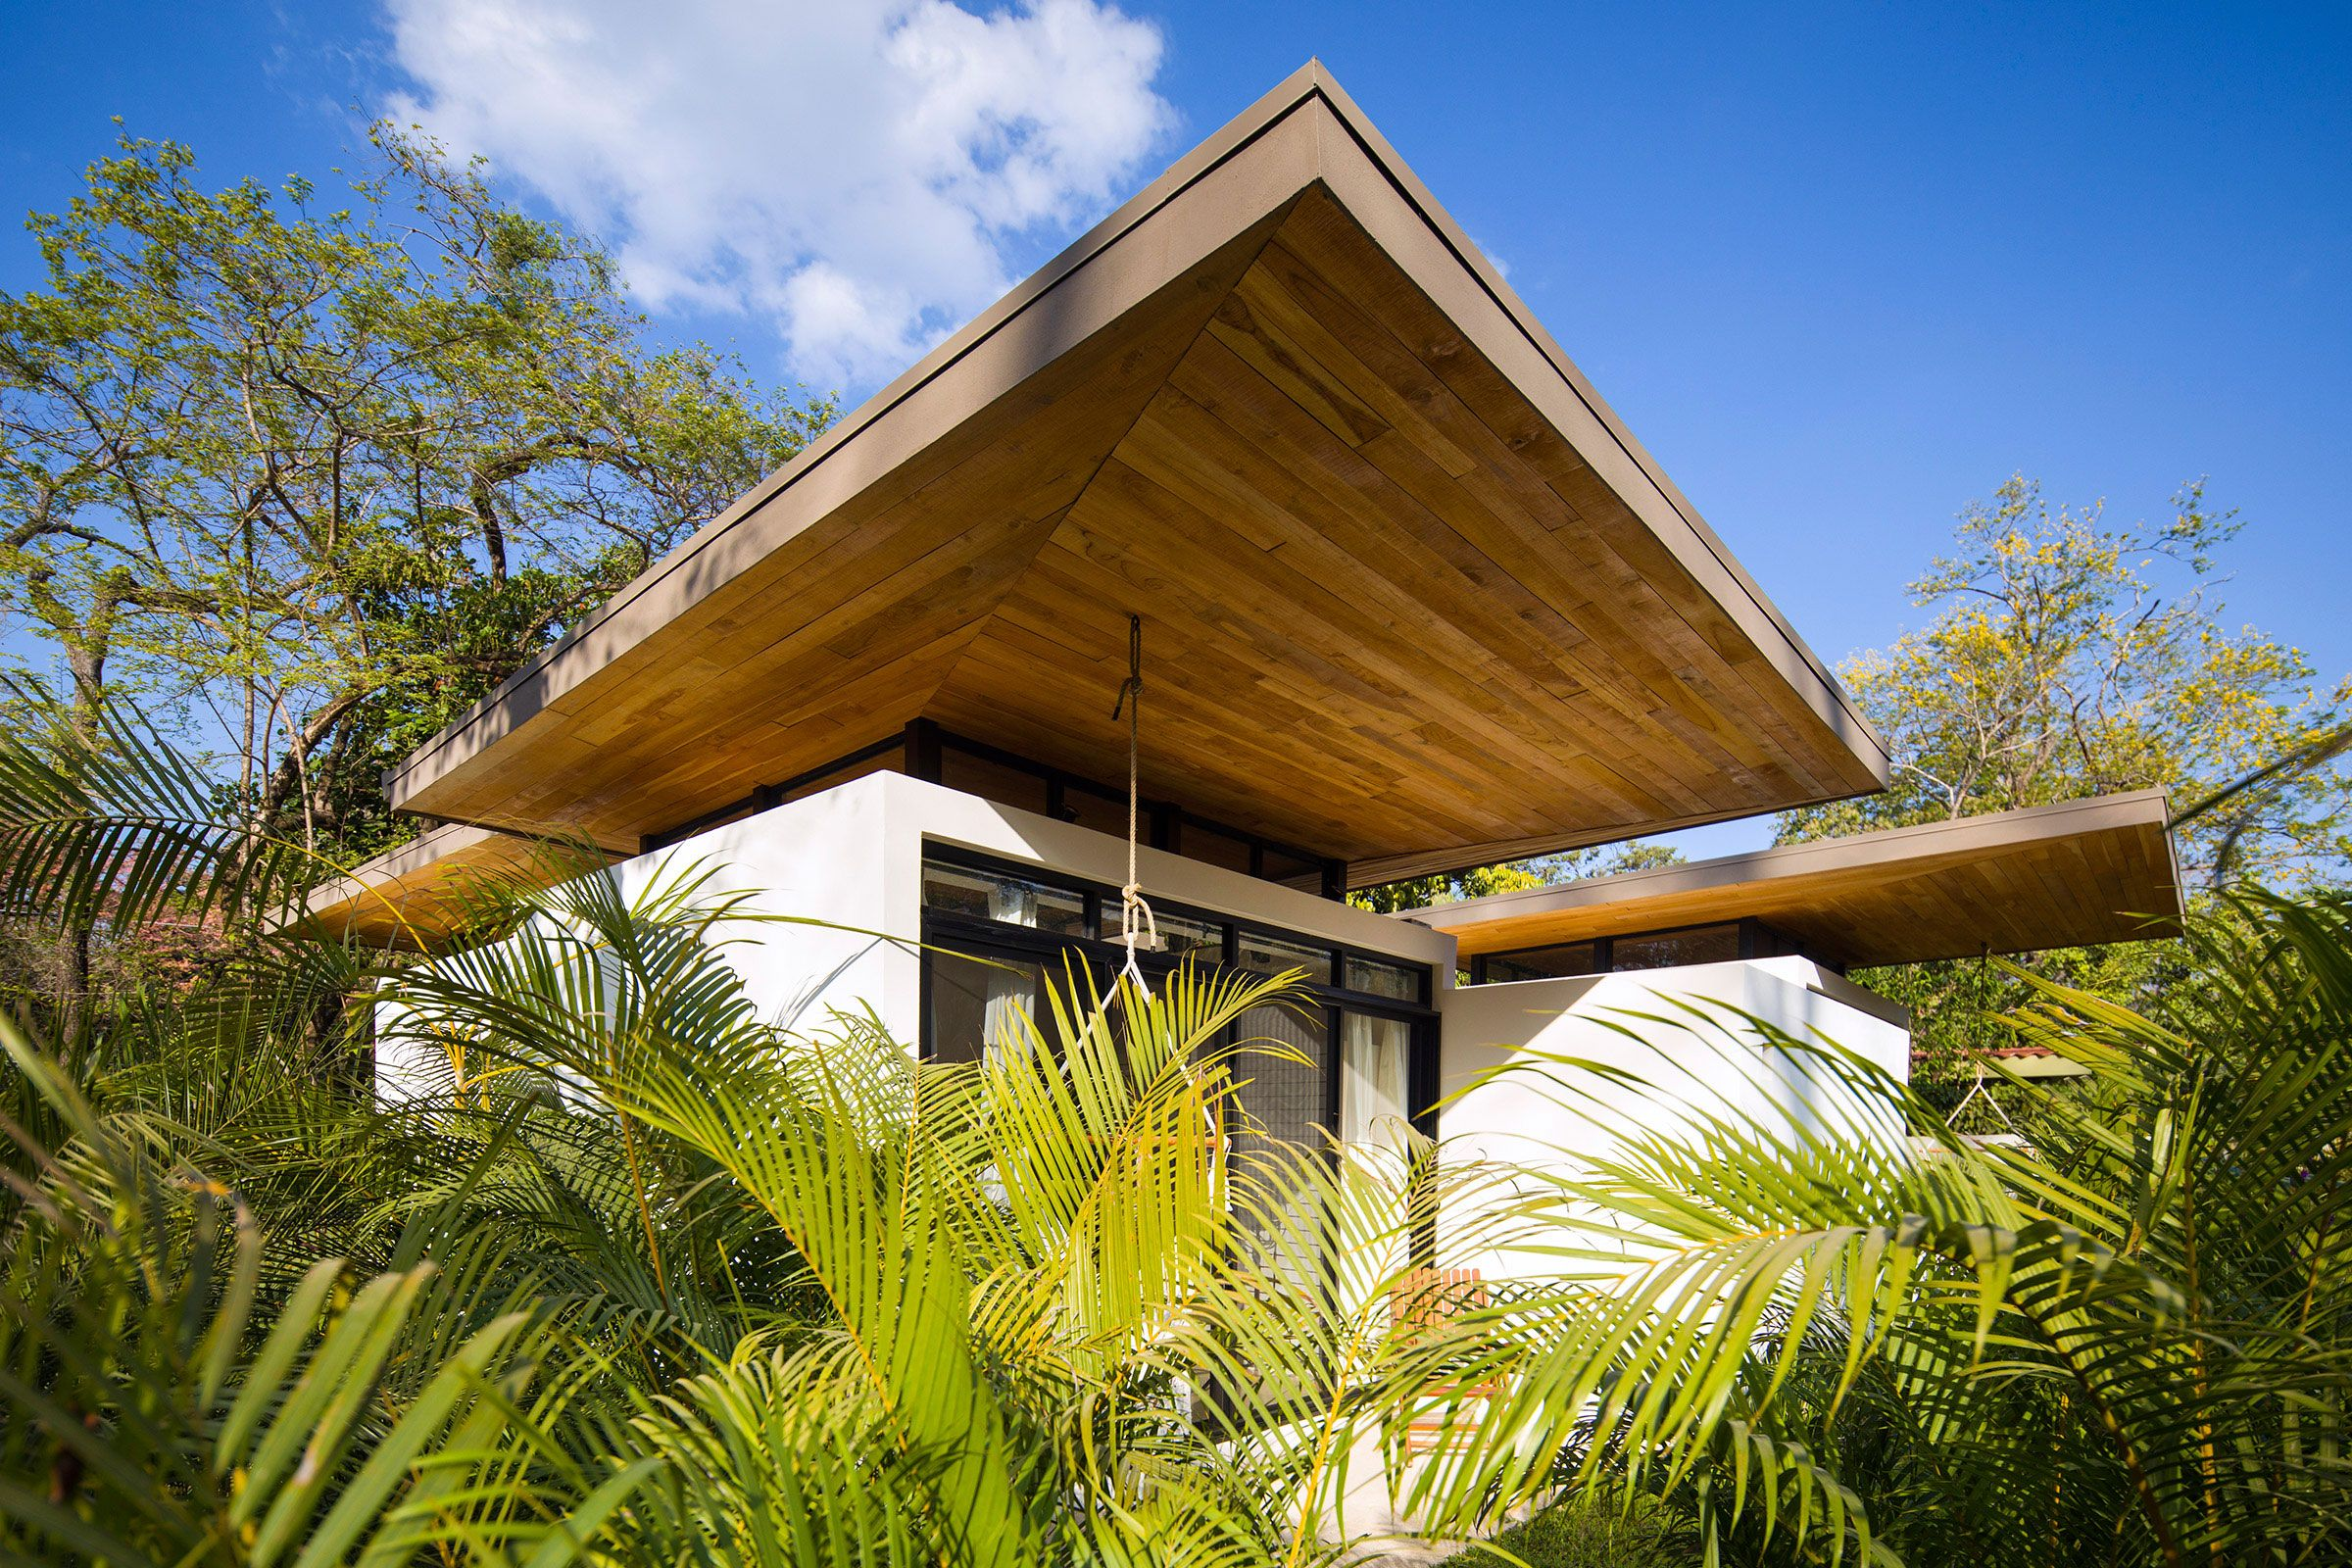 Yoga and forest dwelling by Studio Saxe in Nalu 577fb207cc3